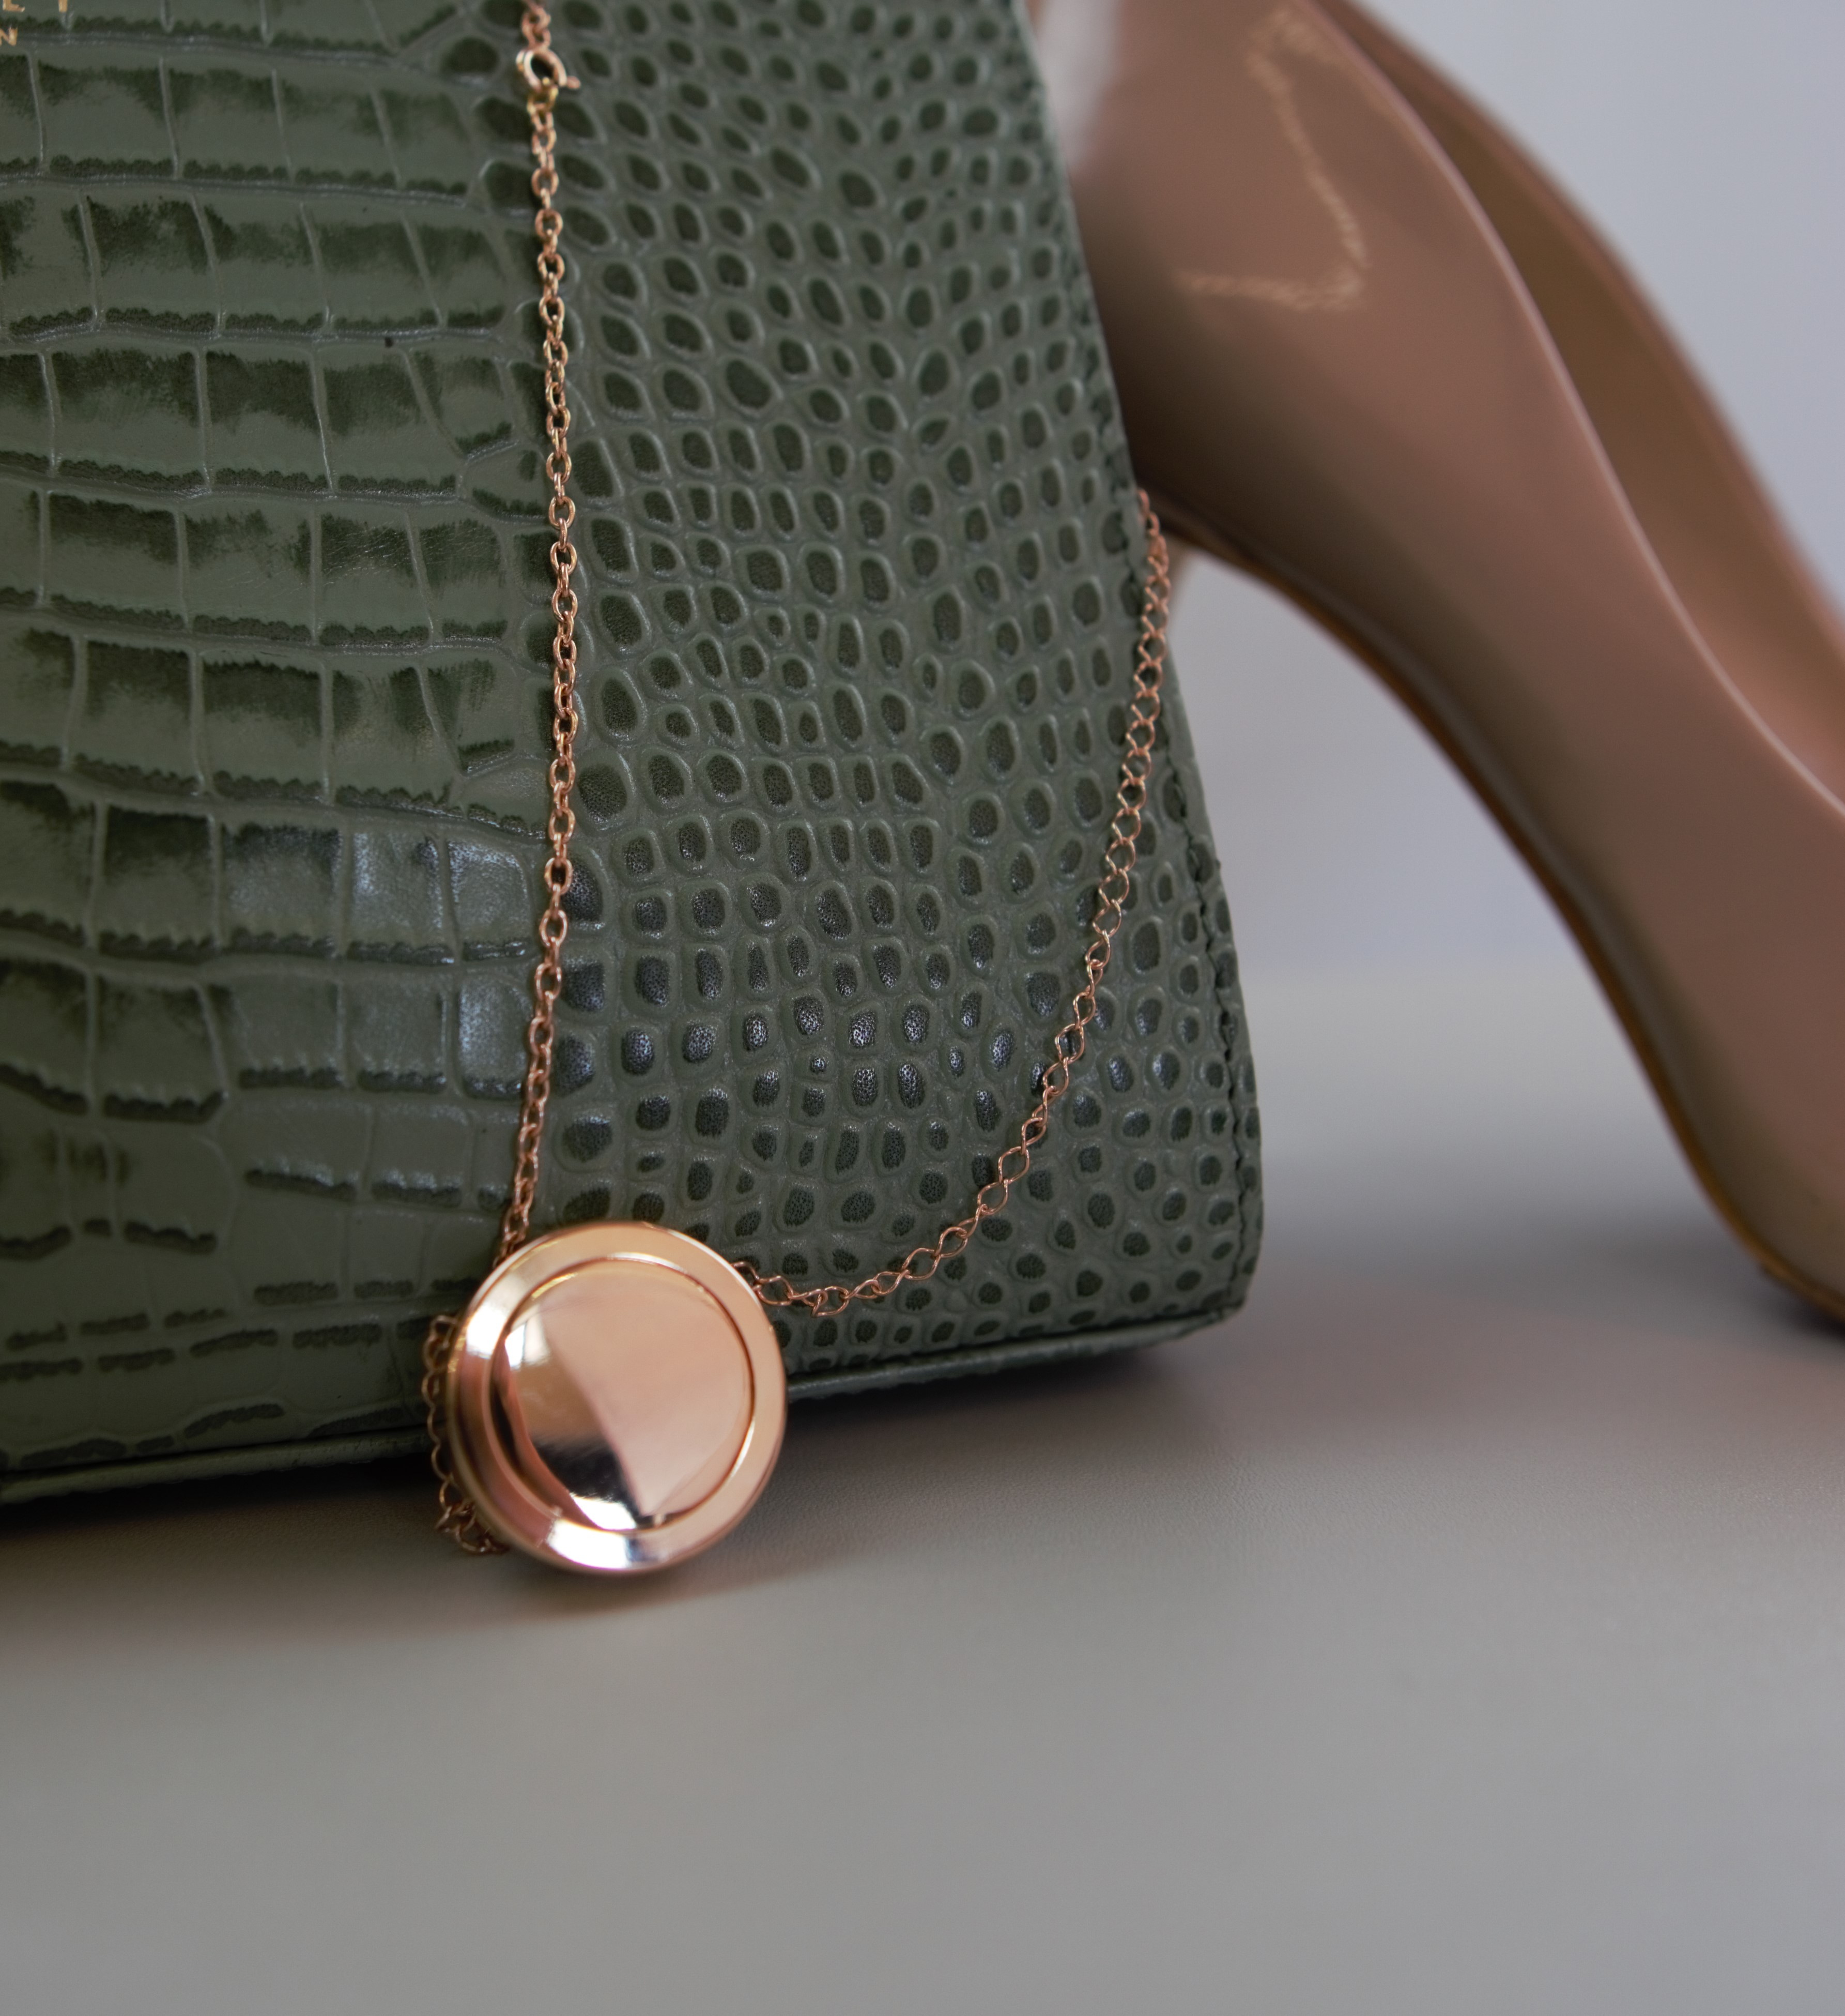 noti safety necklace in styled photo with bag and shoe